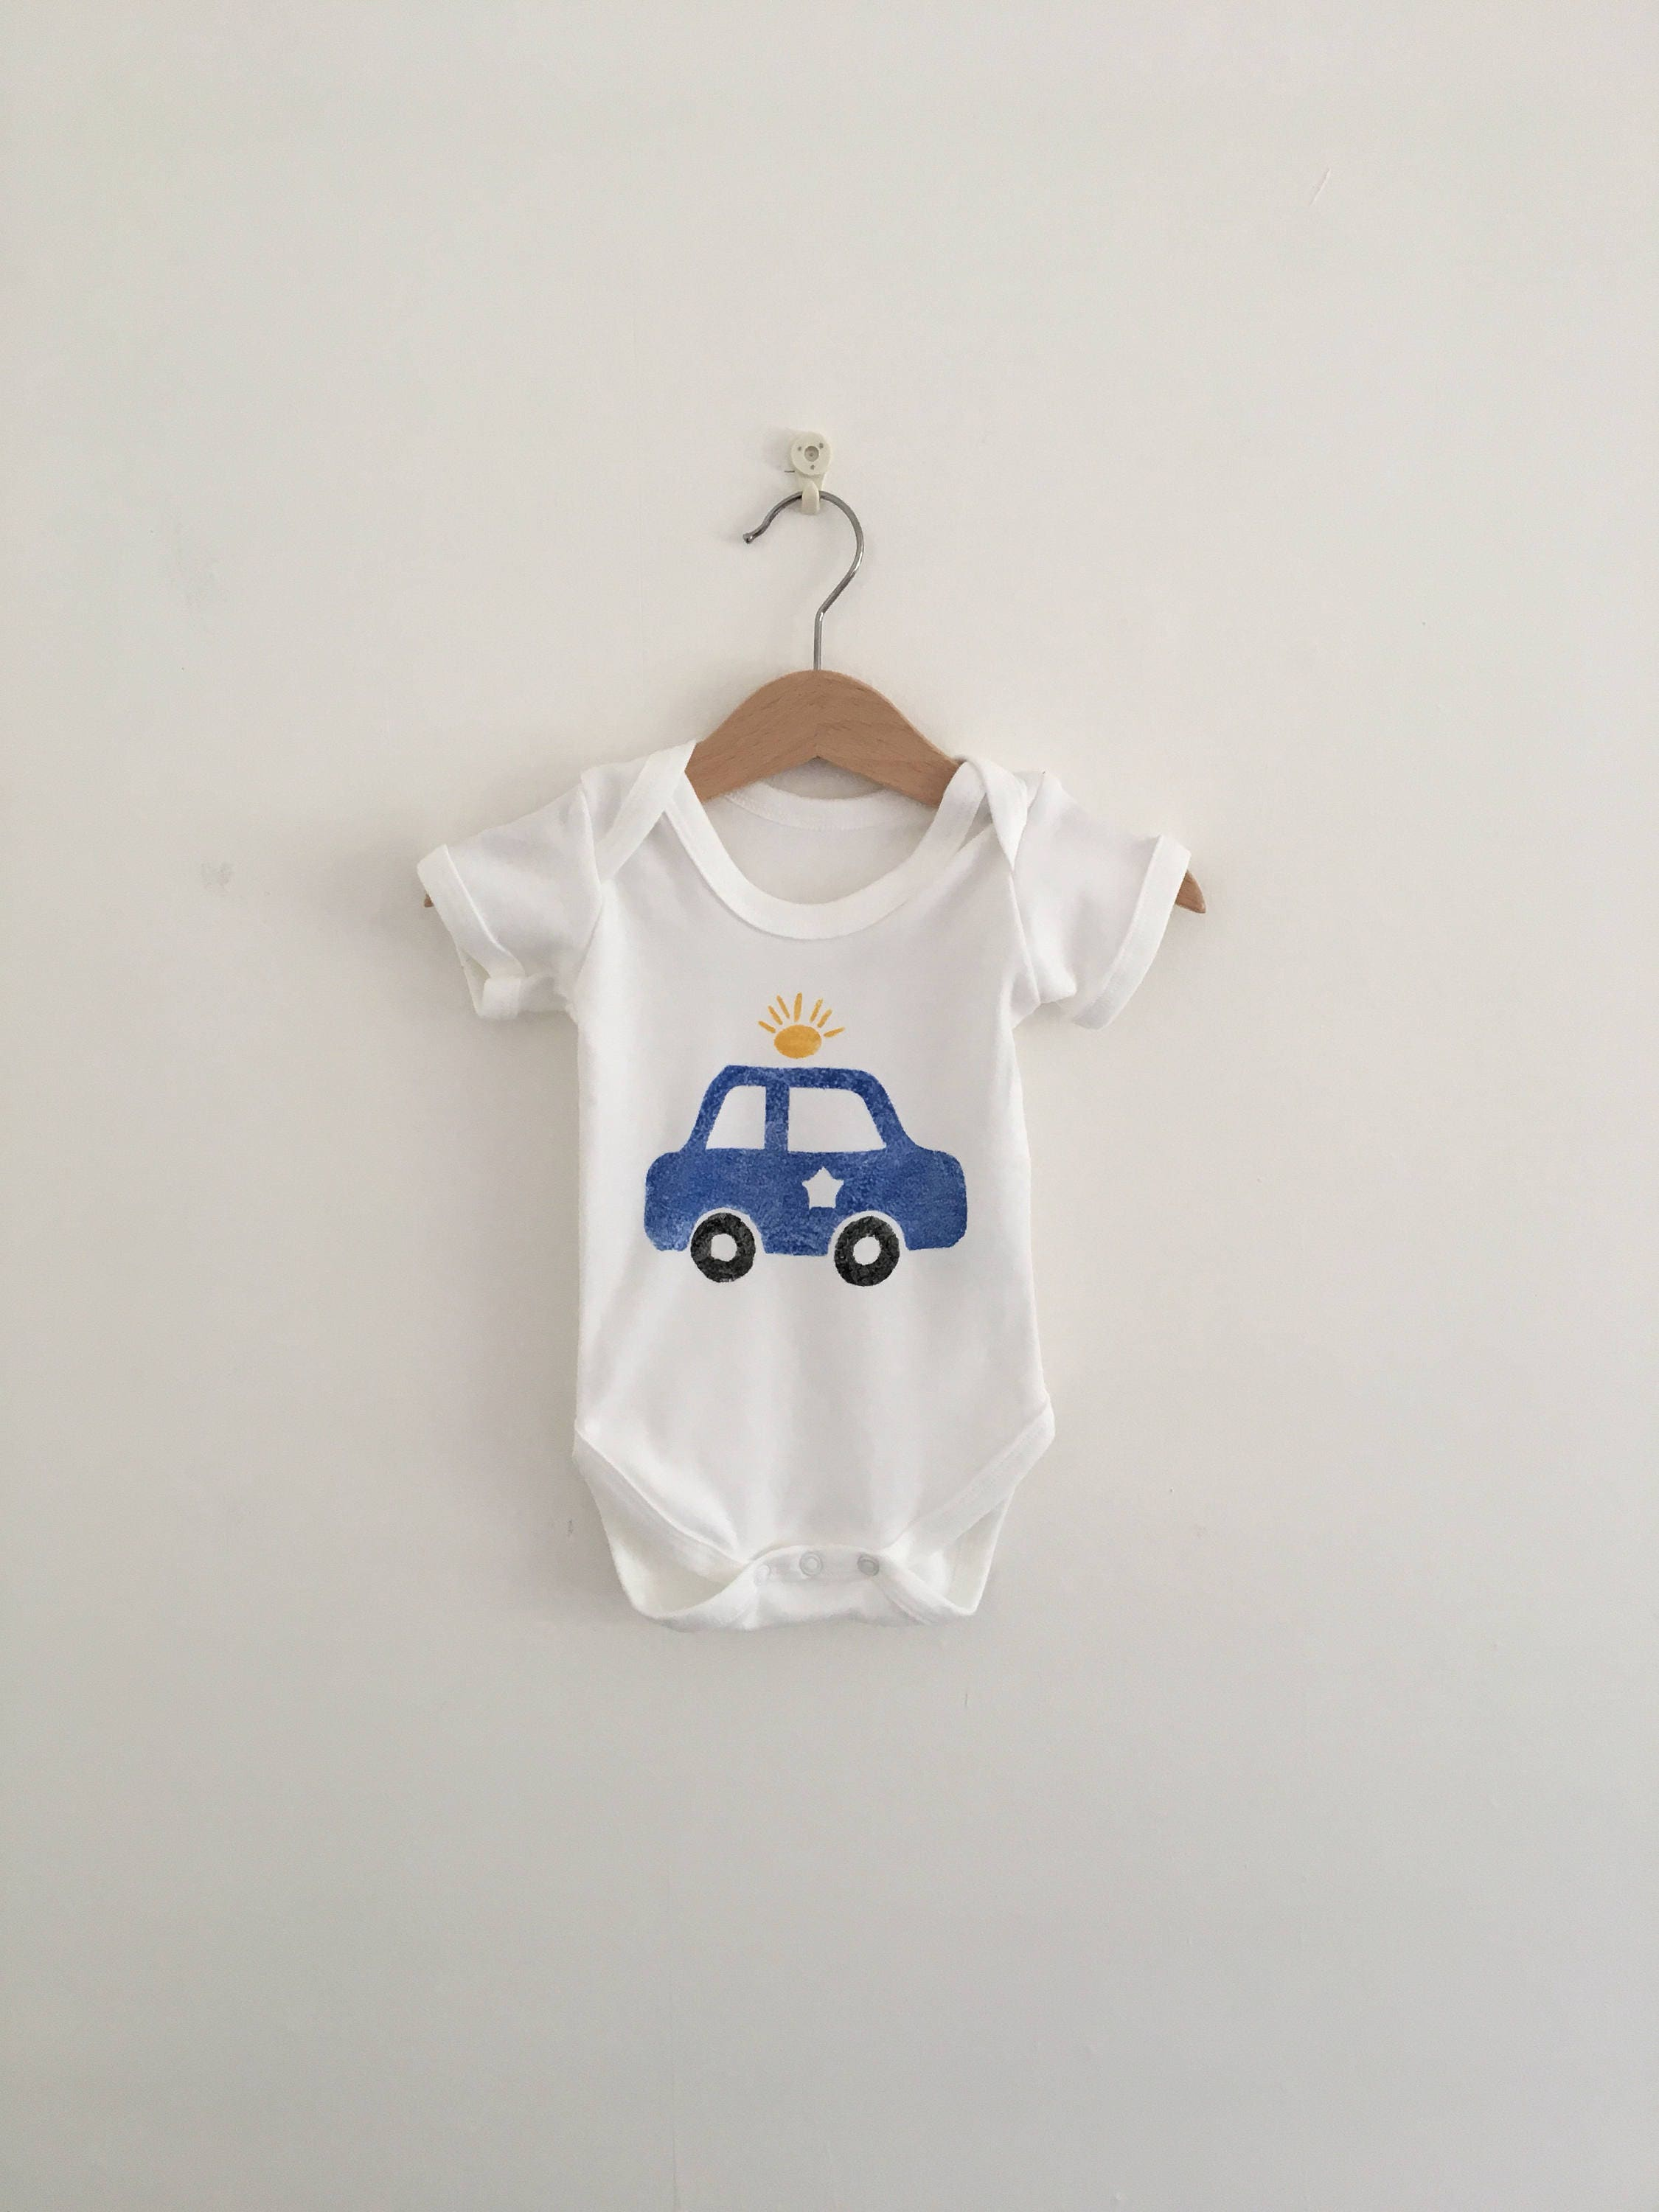 Police Car Baby Clothes 100 Organic Cotton Bodysuit  Police Mom  Police Dadda  Onsie  Vest  newborn gift  Cop Car  Police Baby